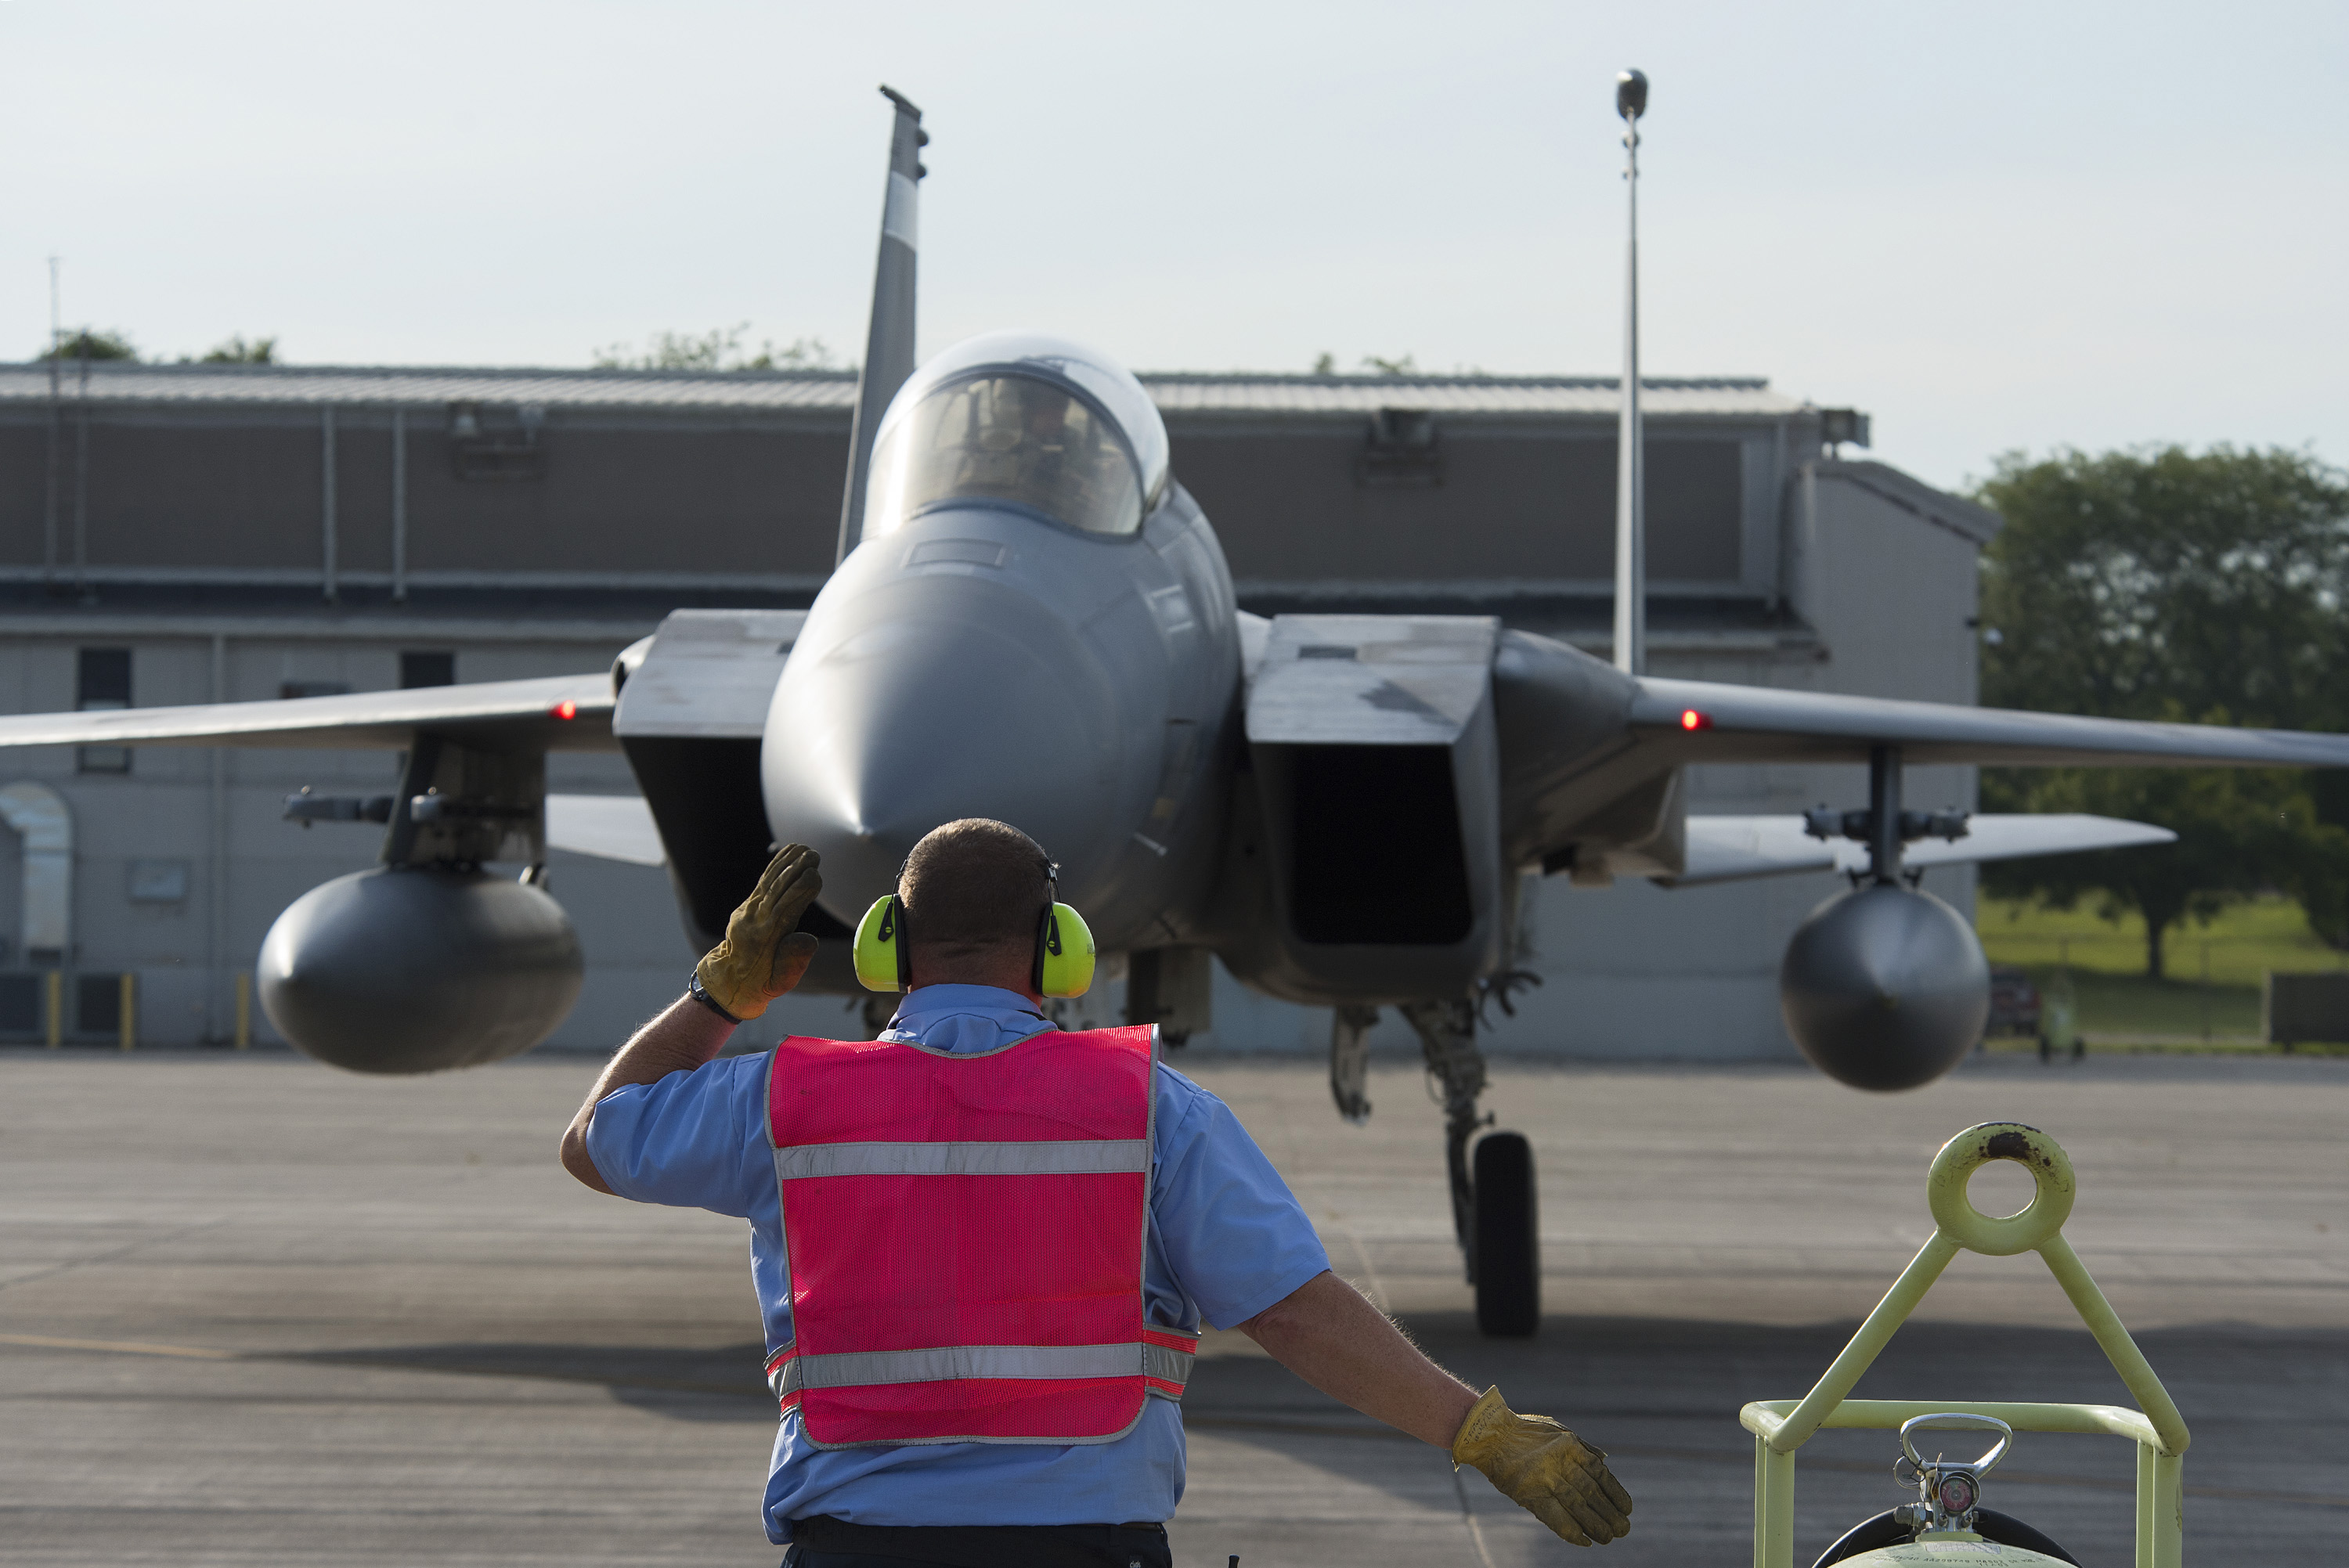 An 88th Logistics Readiness Squadron technician marshals a Florida Air National Guard F-15 Eagle to its parking place at Wright-Patterson Air Force Base, Ohio. Photo via U.S. Air Force/R.J. Oriez.